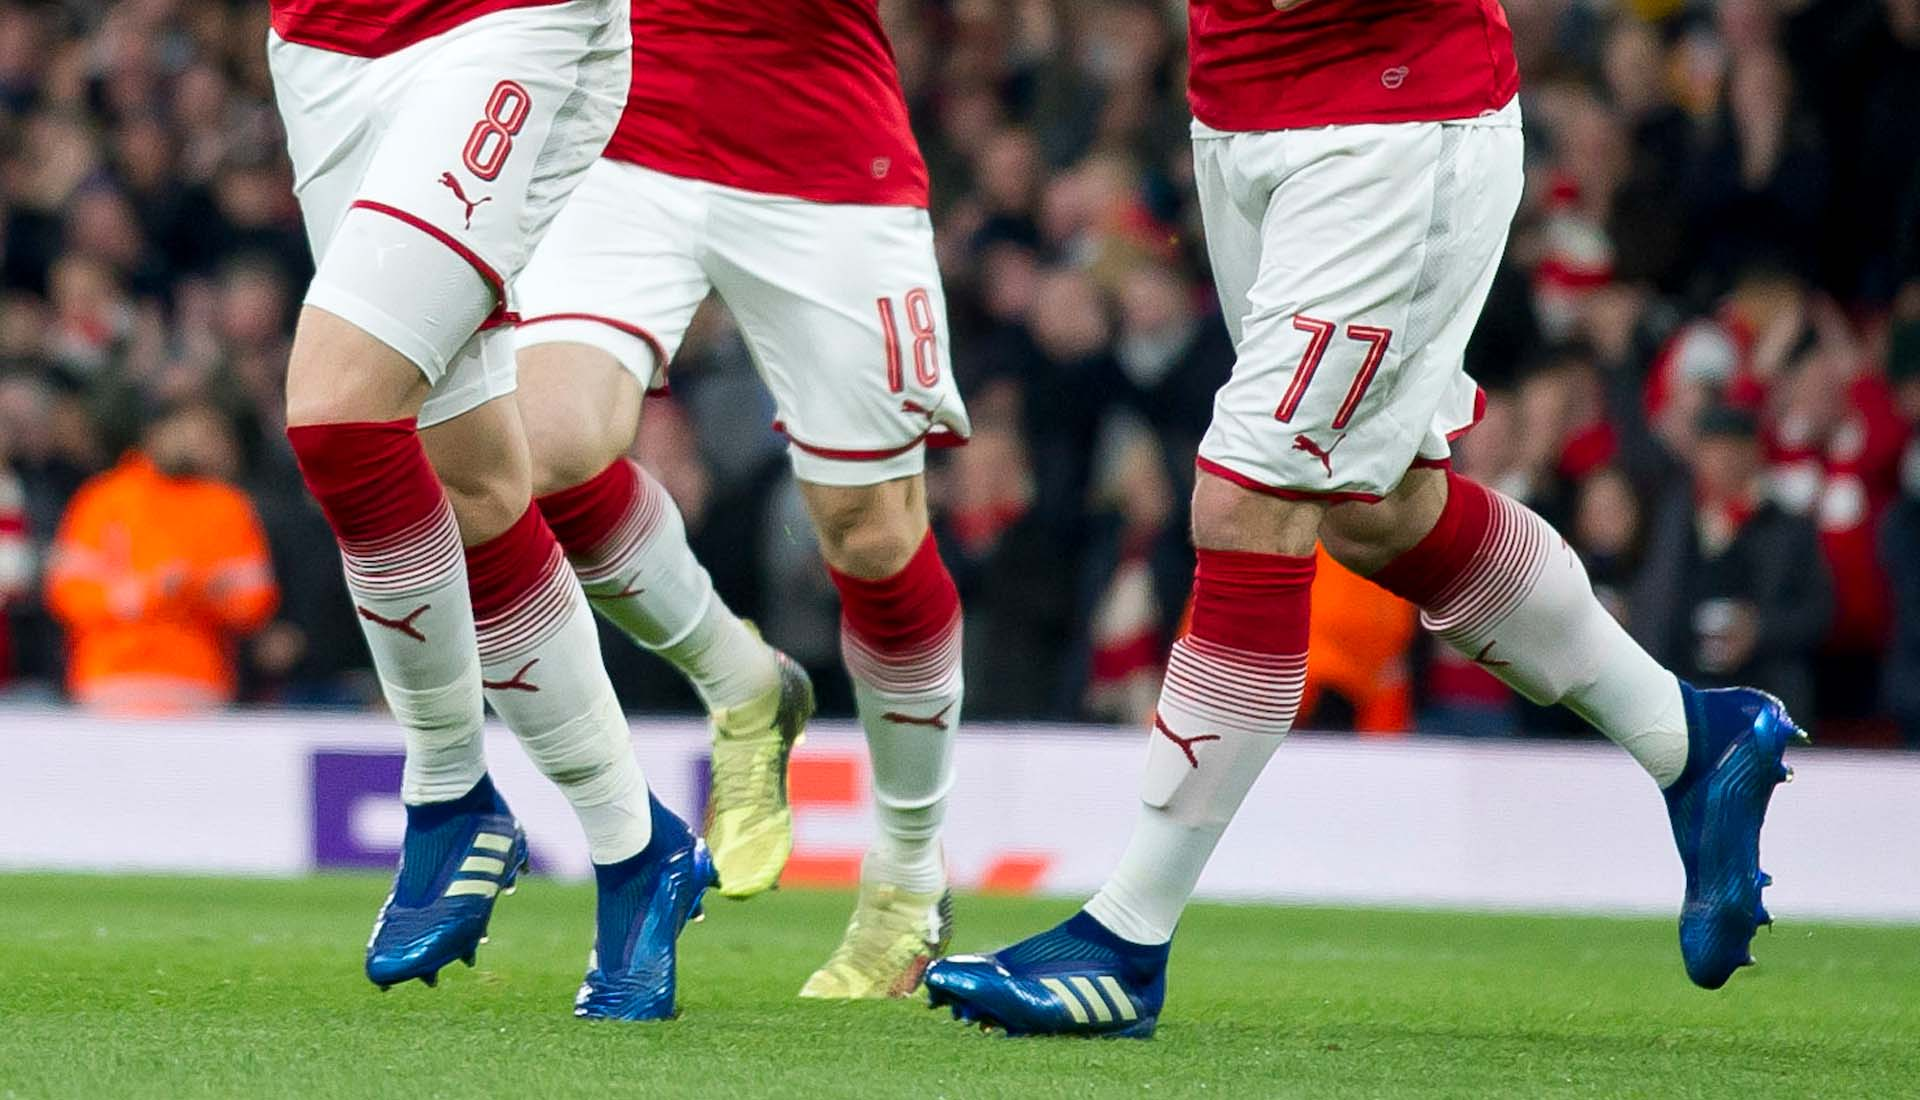 9edf8fc97 Are Arsenal In Talks With adidas Over Kit Deal? - SoccerBible